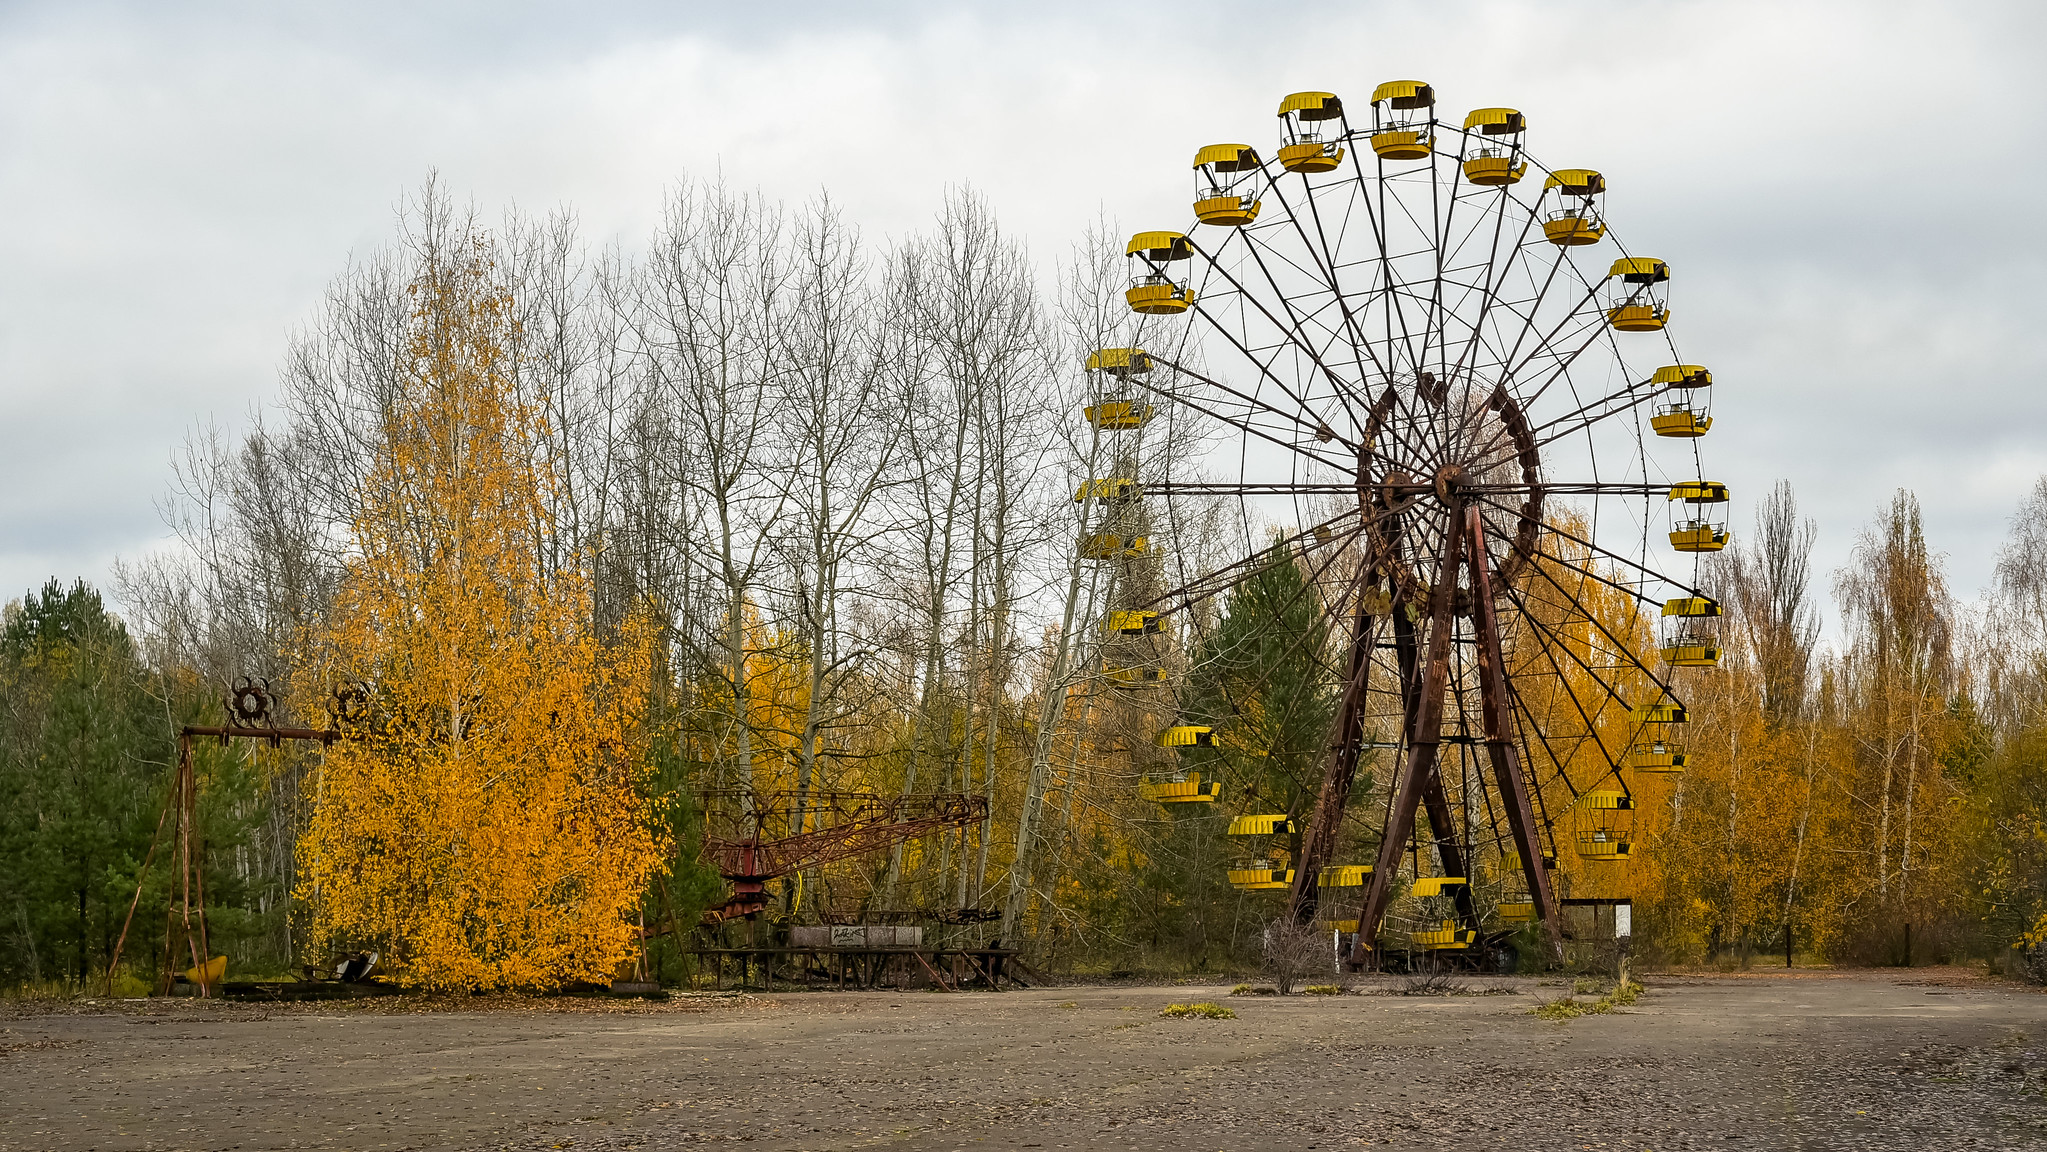 ferris wheel, pripyat amusement park